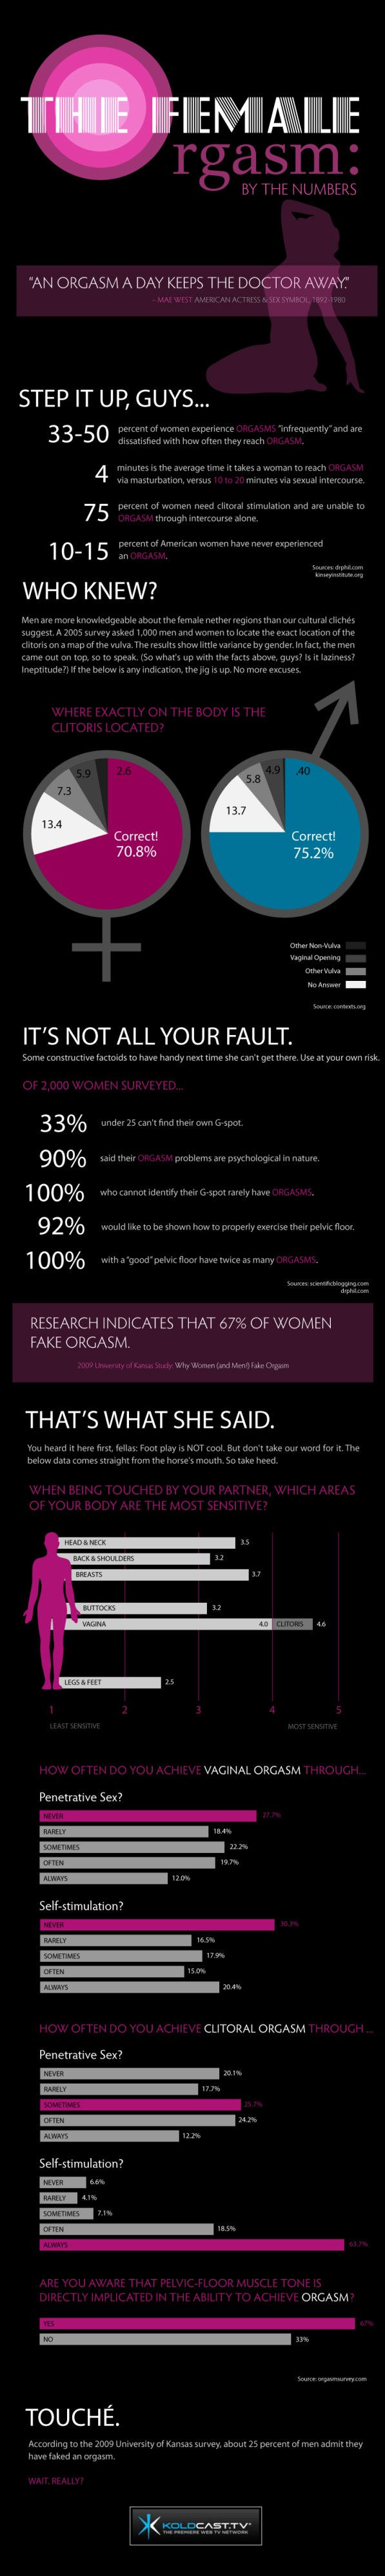 Strange facts about the female orgasm an info graphic